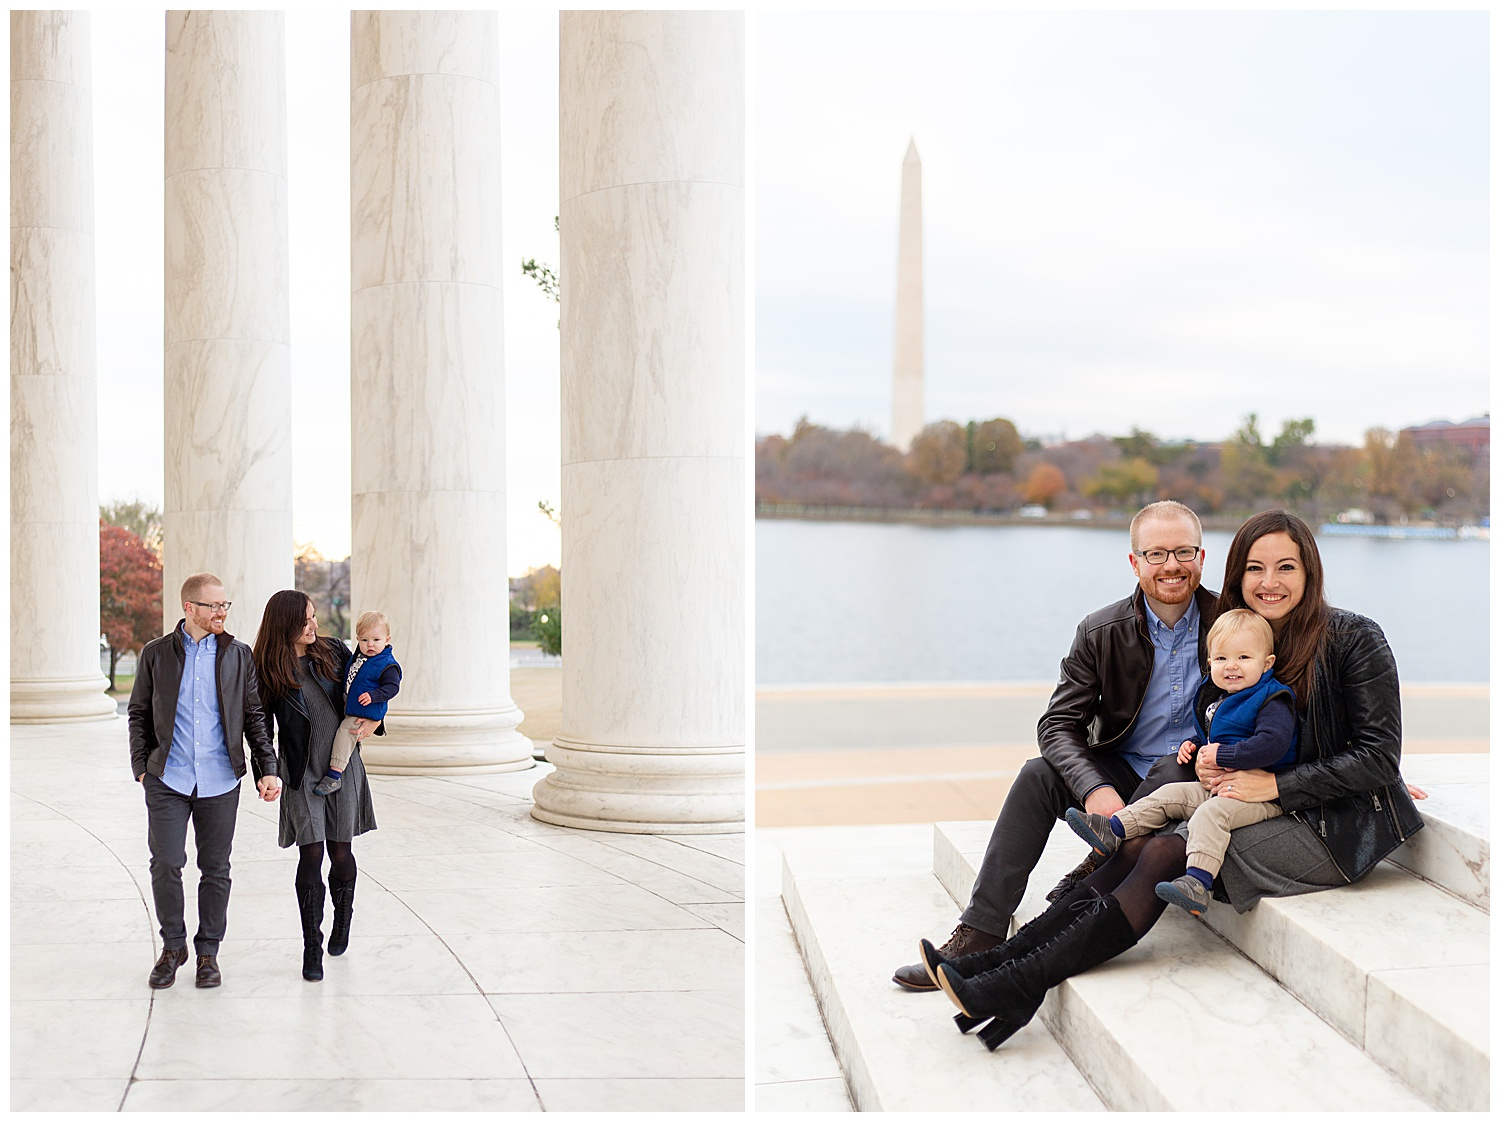 emily-belson-photography-jefferson-memorial-family-01.jpg